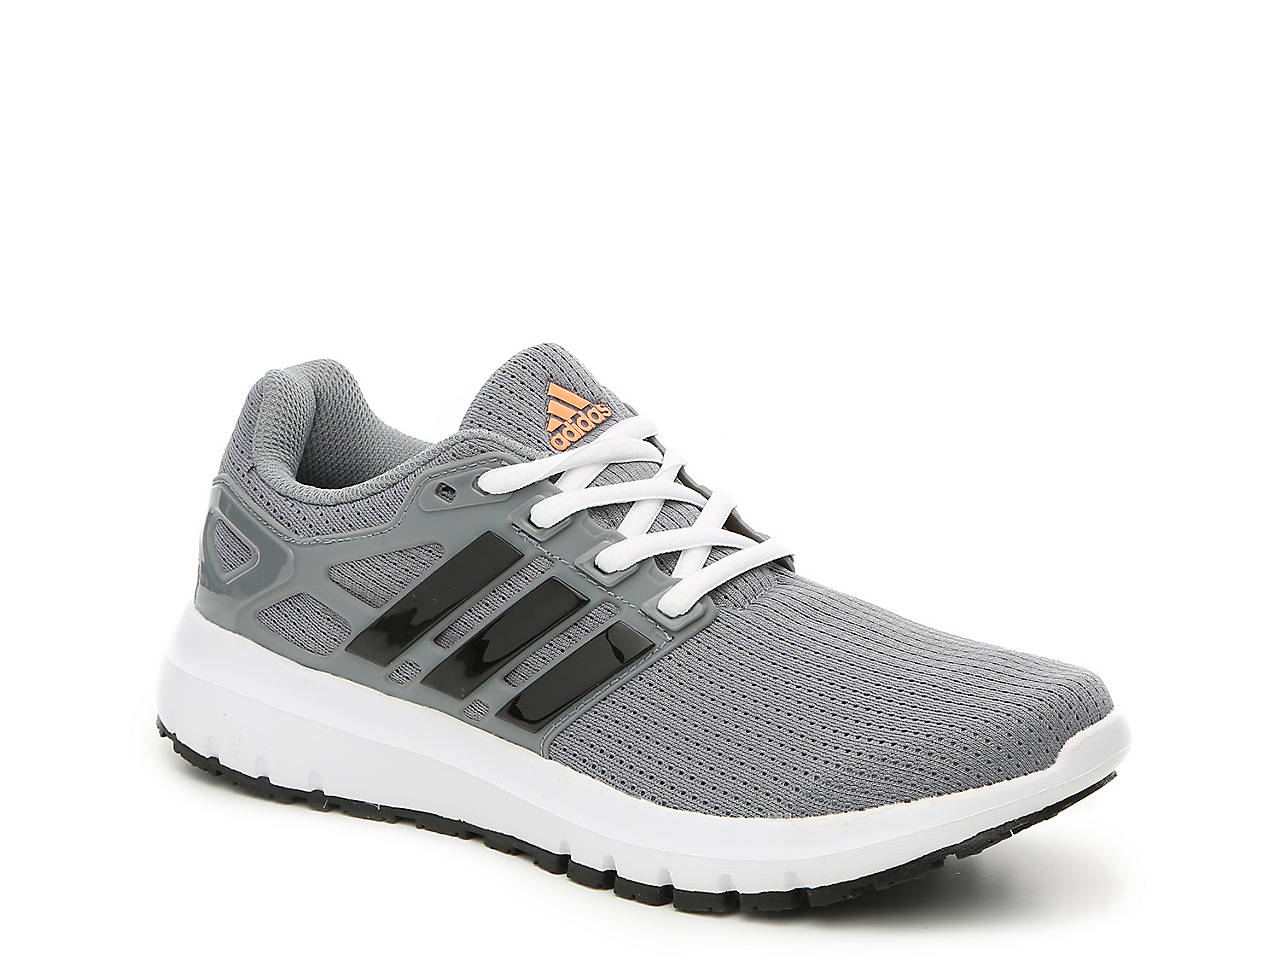 fa4e0823737d8 adidas Energy Cloud Running Shoe - Women s Women s Shoes